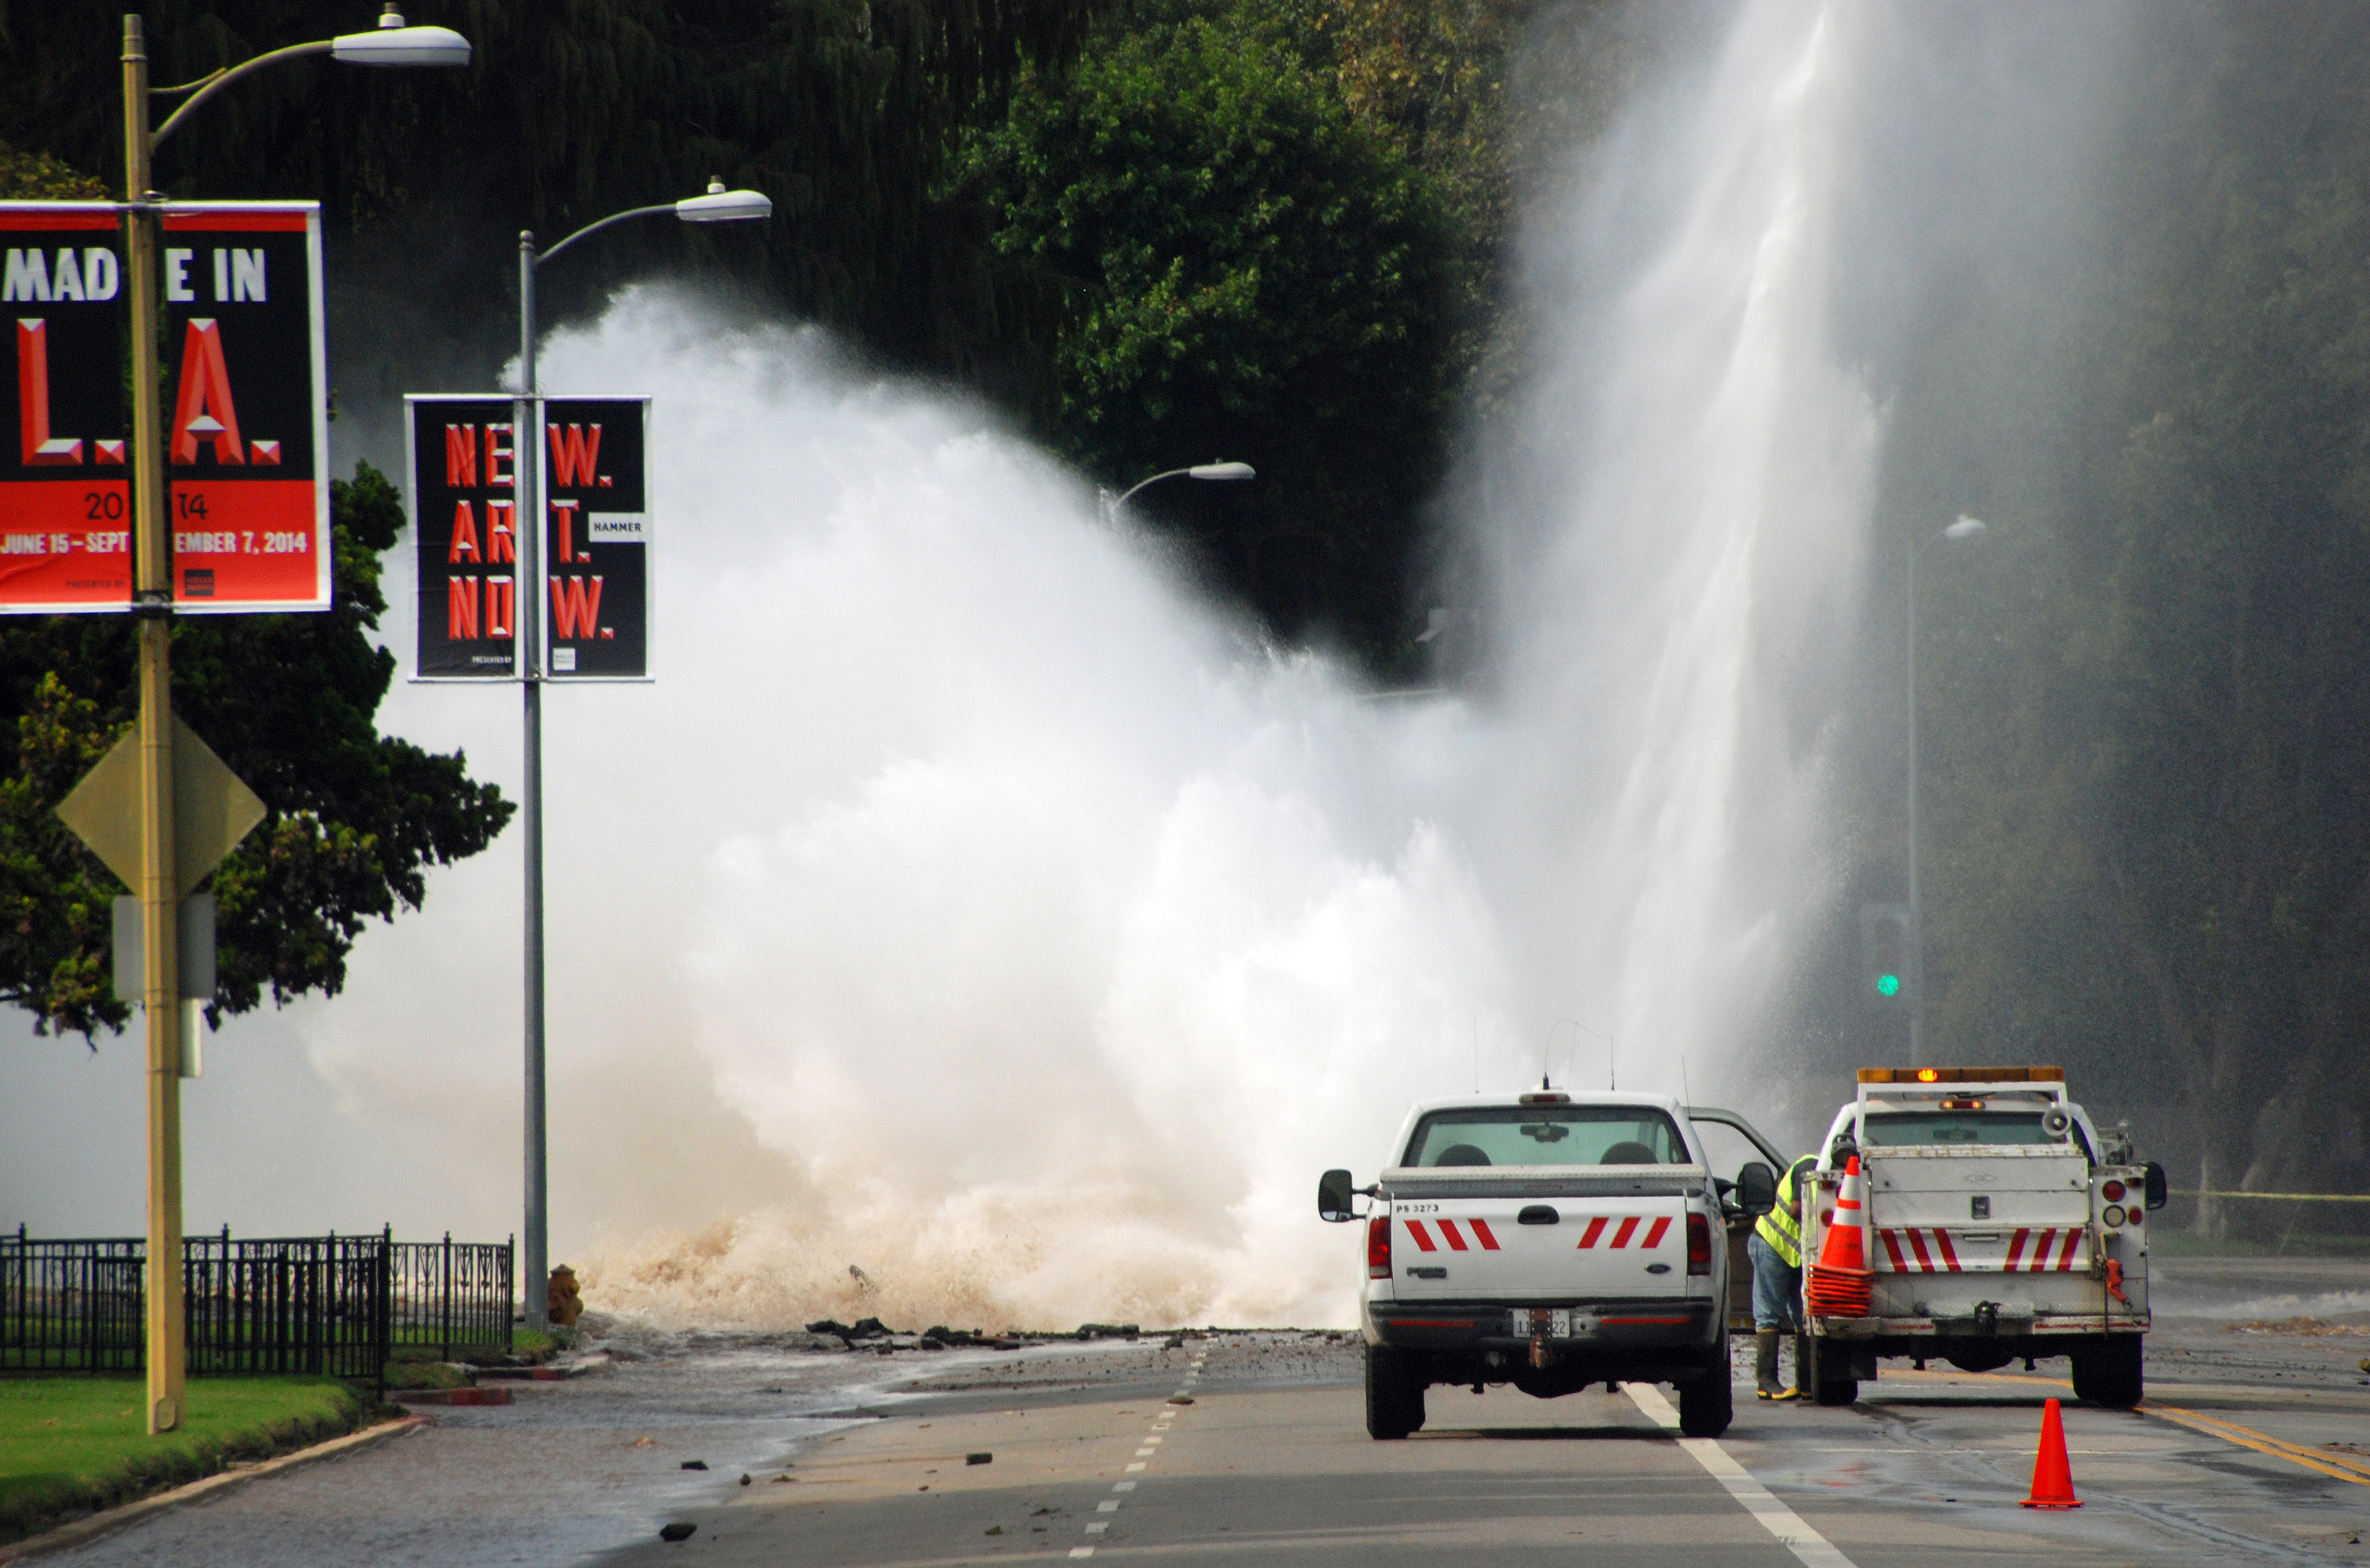 Water shoots in the air from a broken 30-inch water main under Sunset Boulevard, uphill from UCLA in the Westwood section of Los Angeles, Tuesday, July 29, 2014. The resulting flood inundated several areas of UCLA, including Pauley Pavilion, home of UCLA basketball, a parking structure and several other building. (AP Photo/Mike Meadows)